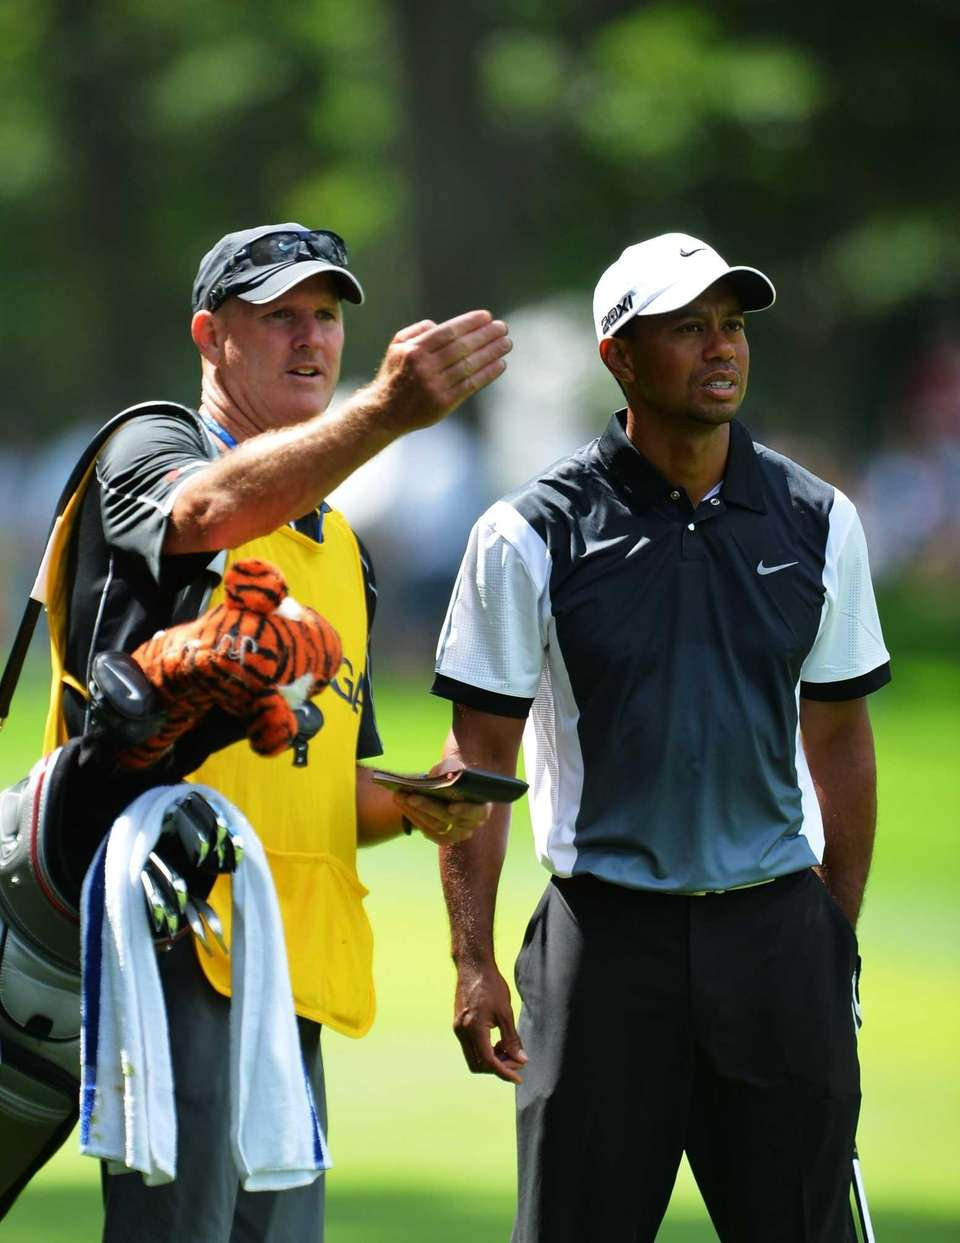 Tiger Woods of the United States chats with